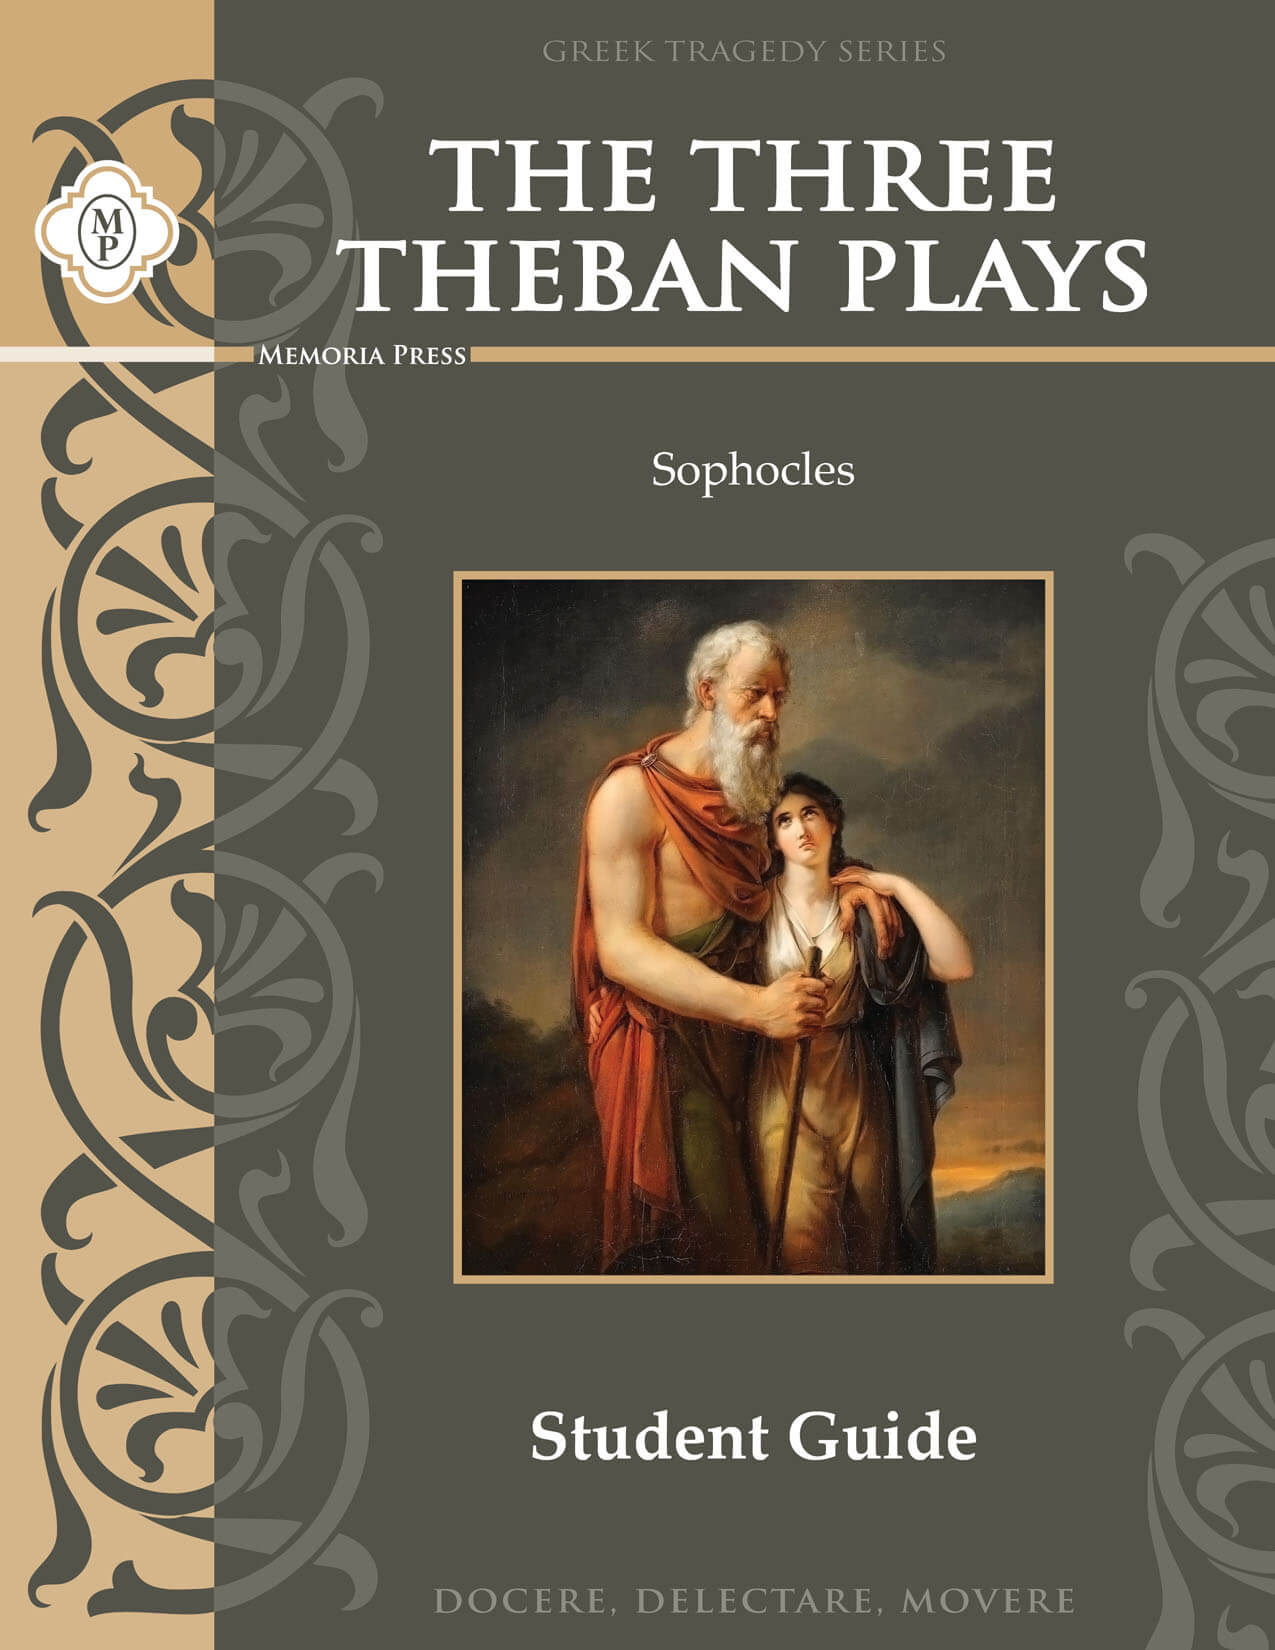 the theme of fate in sophocles three theban plays Fate vs free will literary theme: fate vs free will view full essay sophocles three theban plays: antigone, oedipus the king, oedipus and colonus.